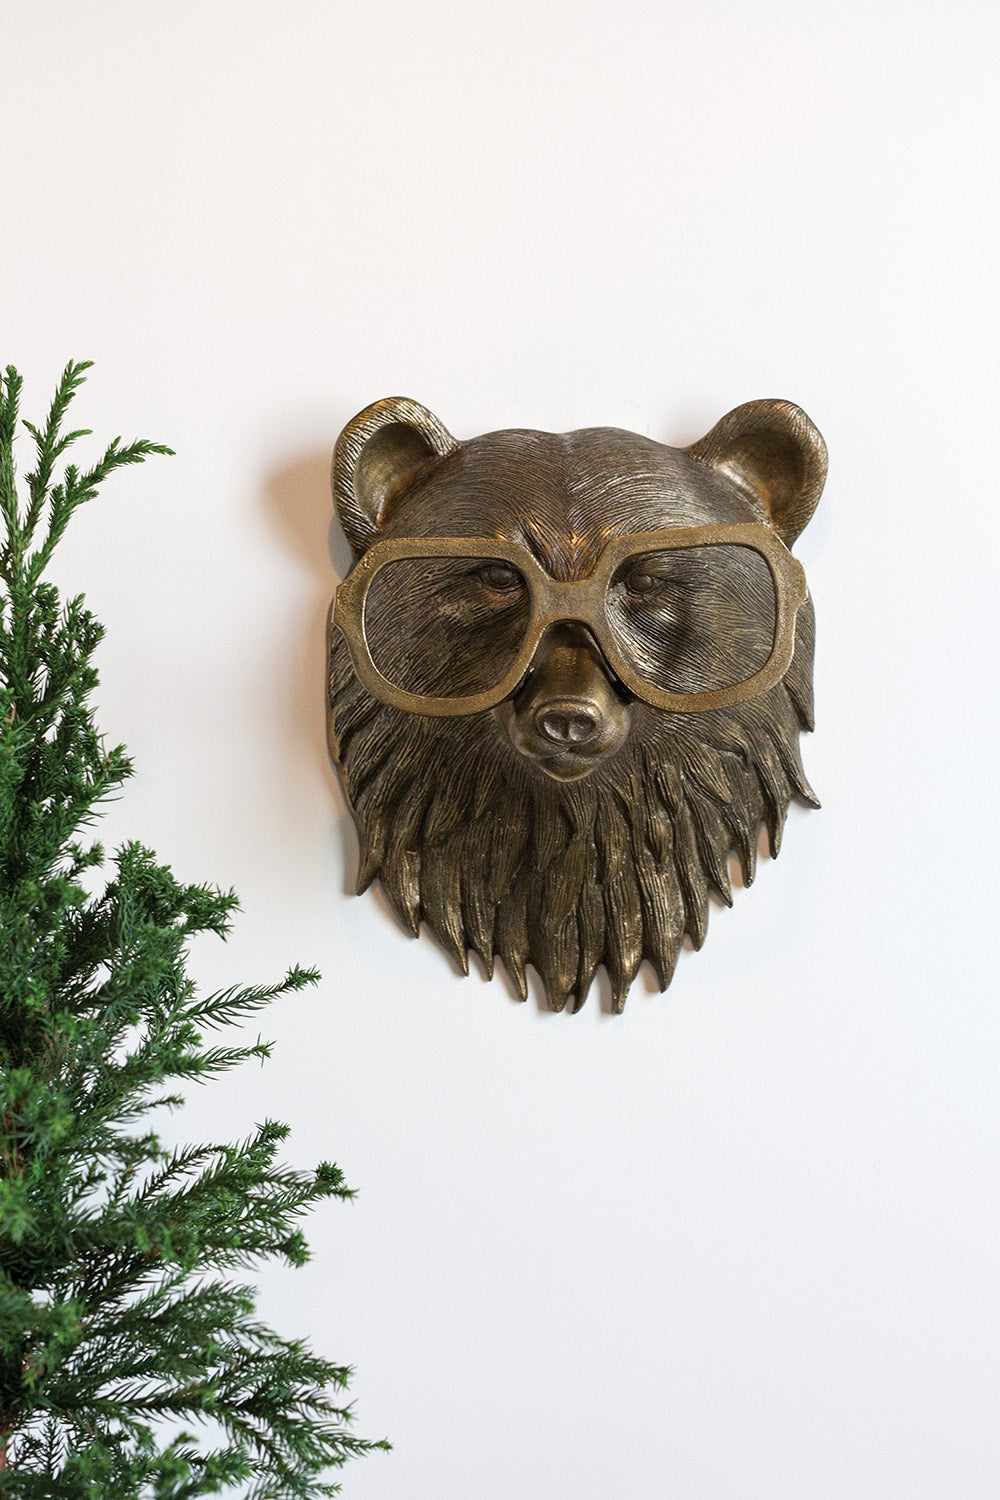 a head of a bear in metal with brass finish. the bear is using big readers